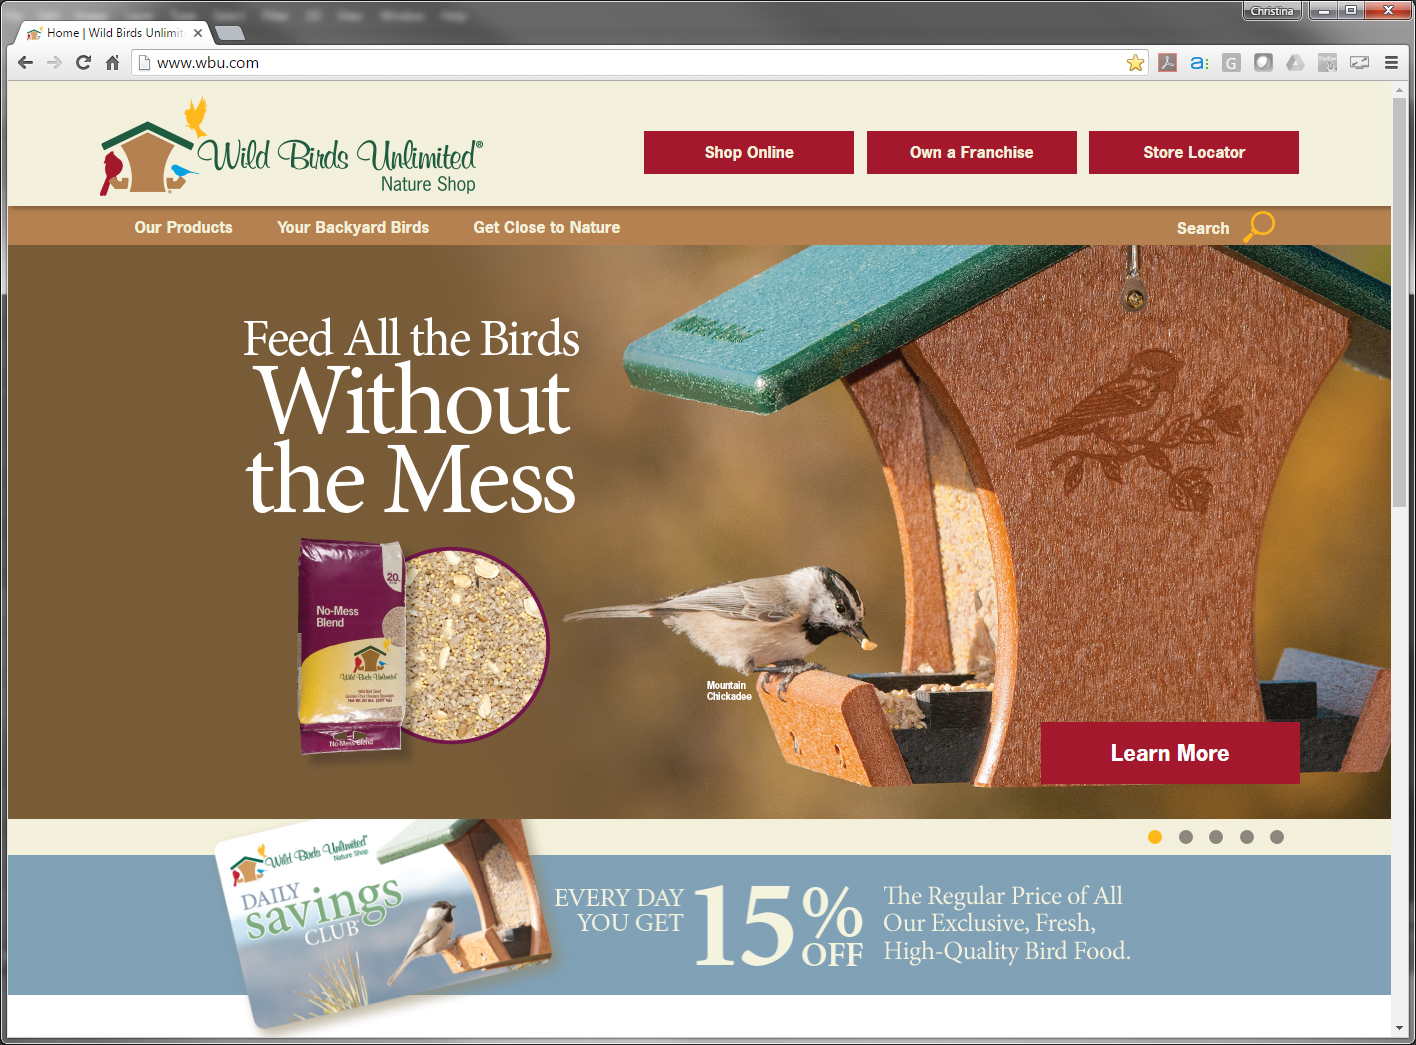 Redesigned Website Invites Everyone to Attract Wild Birds to Their Backyard